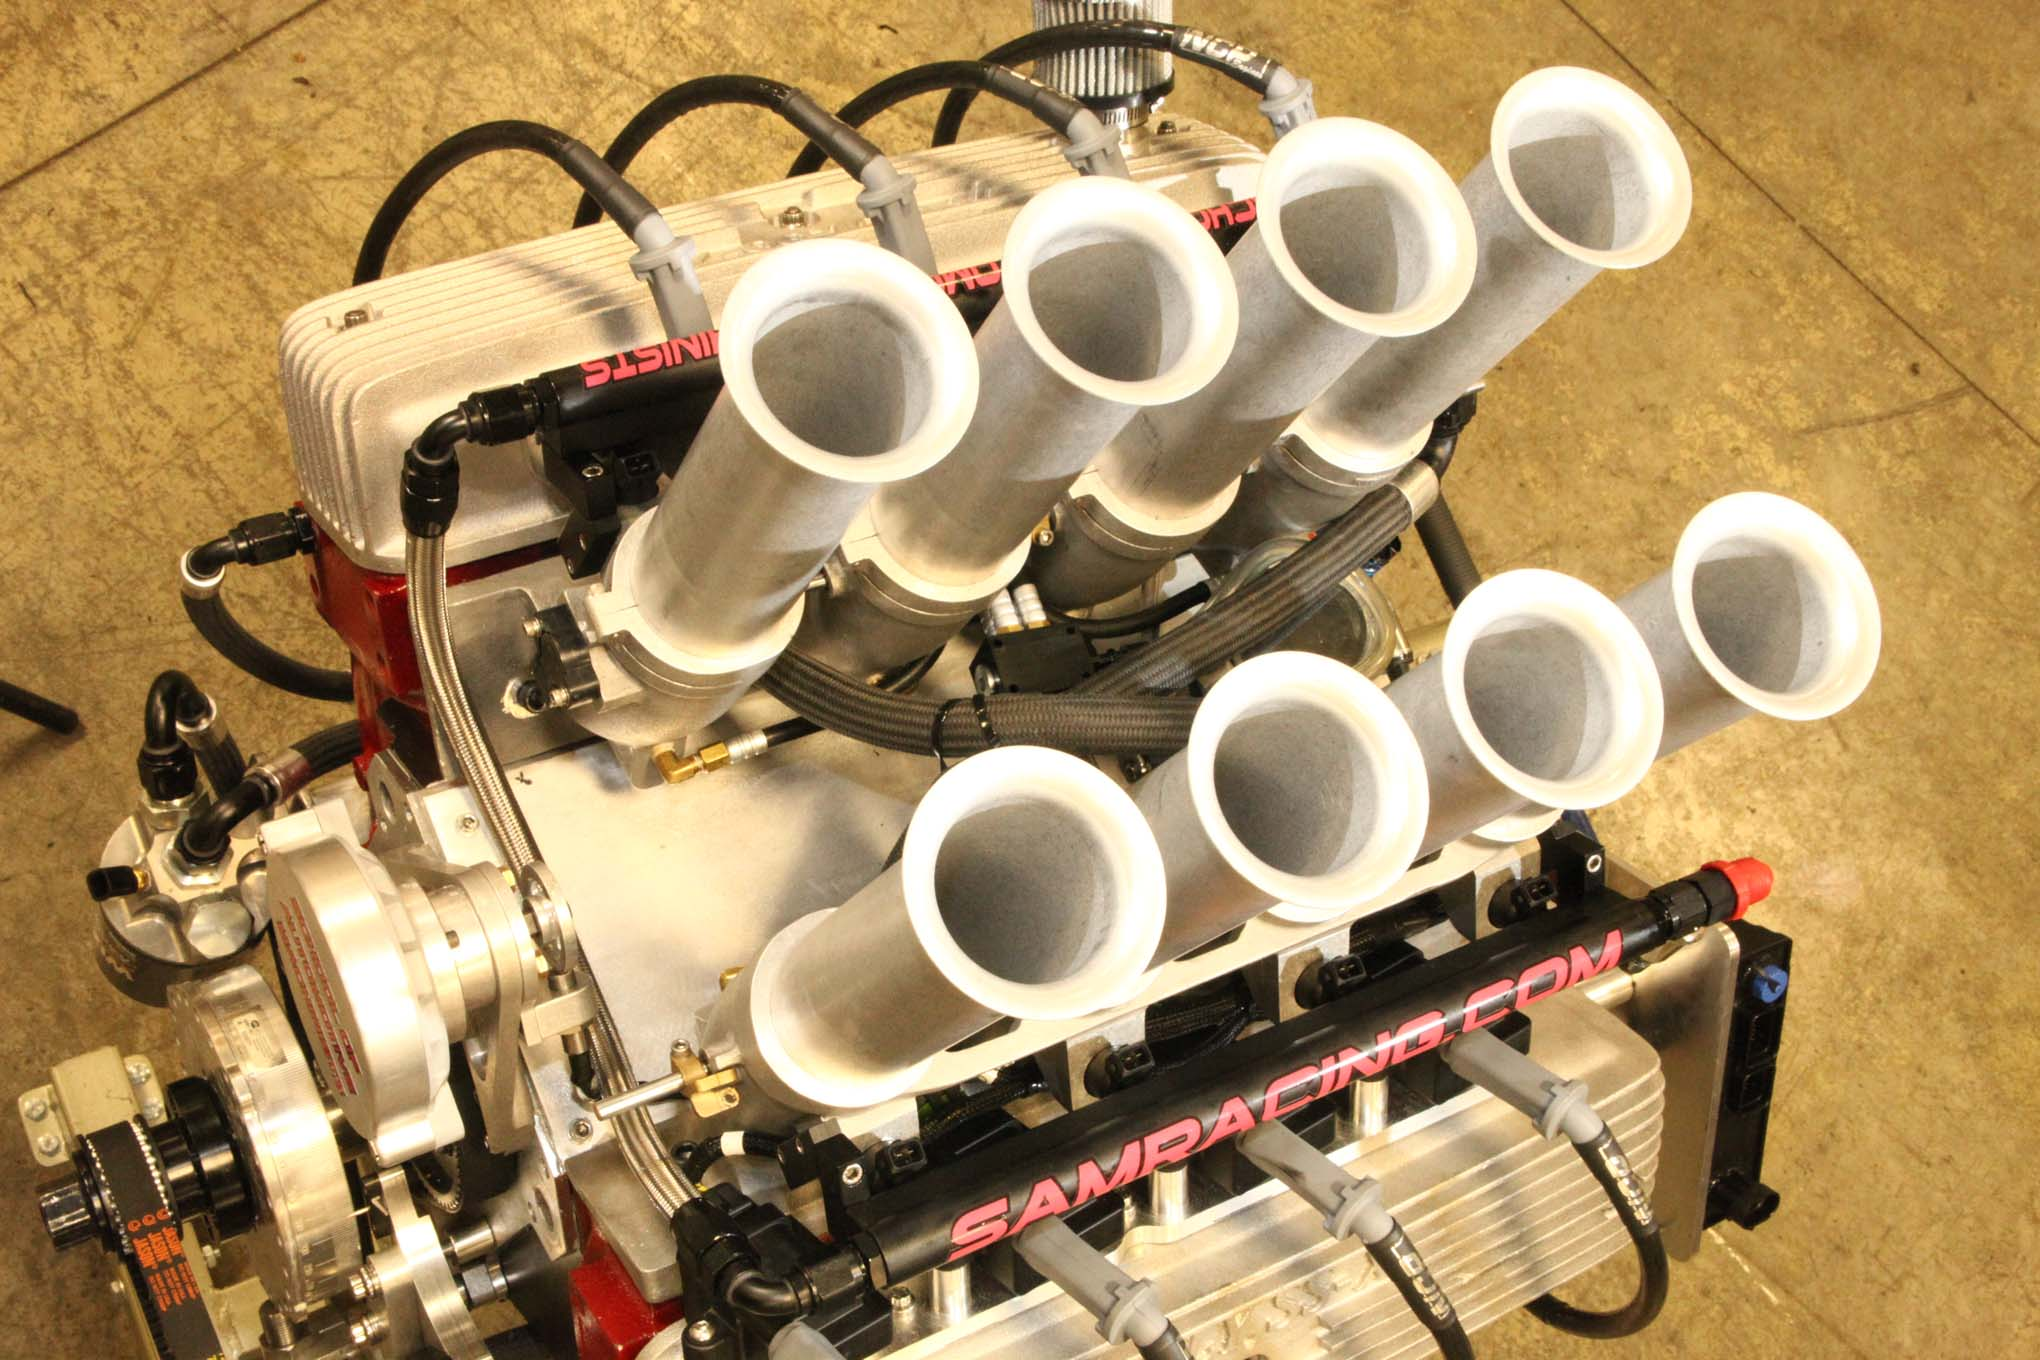 Though a number of factory and aftermarket 4-bbl, 3x2, and 2x4 intake manifolds exist for the Poly, they're mostly obsolete vintage items. Then the SAM team noticed the Gen III Chevy V8 has nearly identical port spacing. This opened the door to a Hilborn LS7 individual-runner EFI casting. Hilborn's three-piece construction simplified the adaptation process.